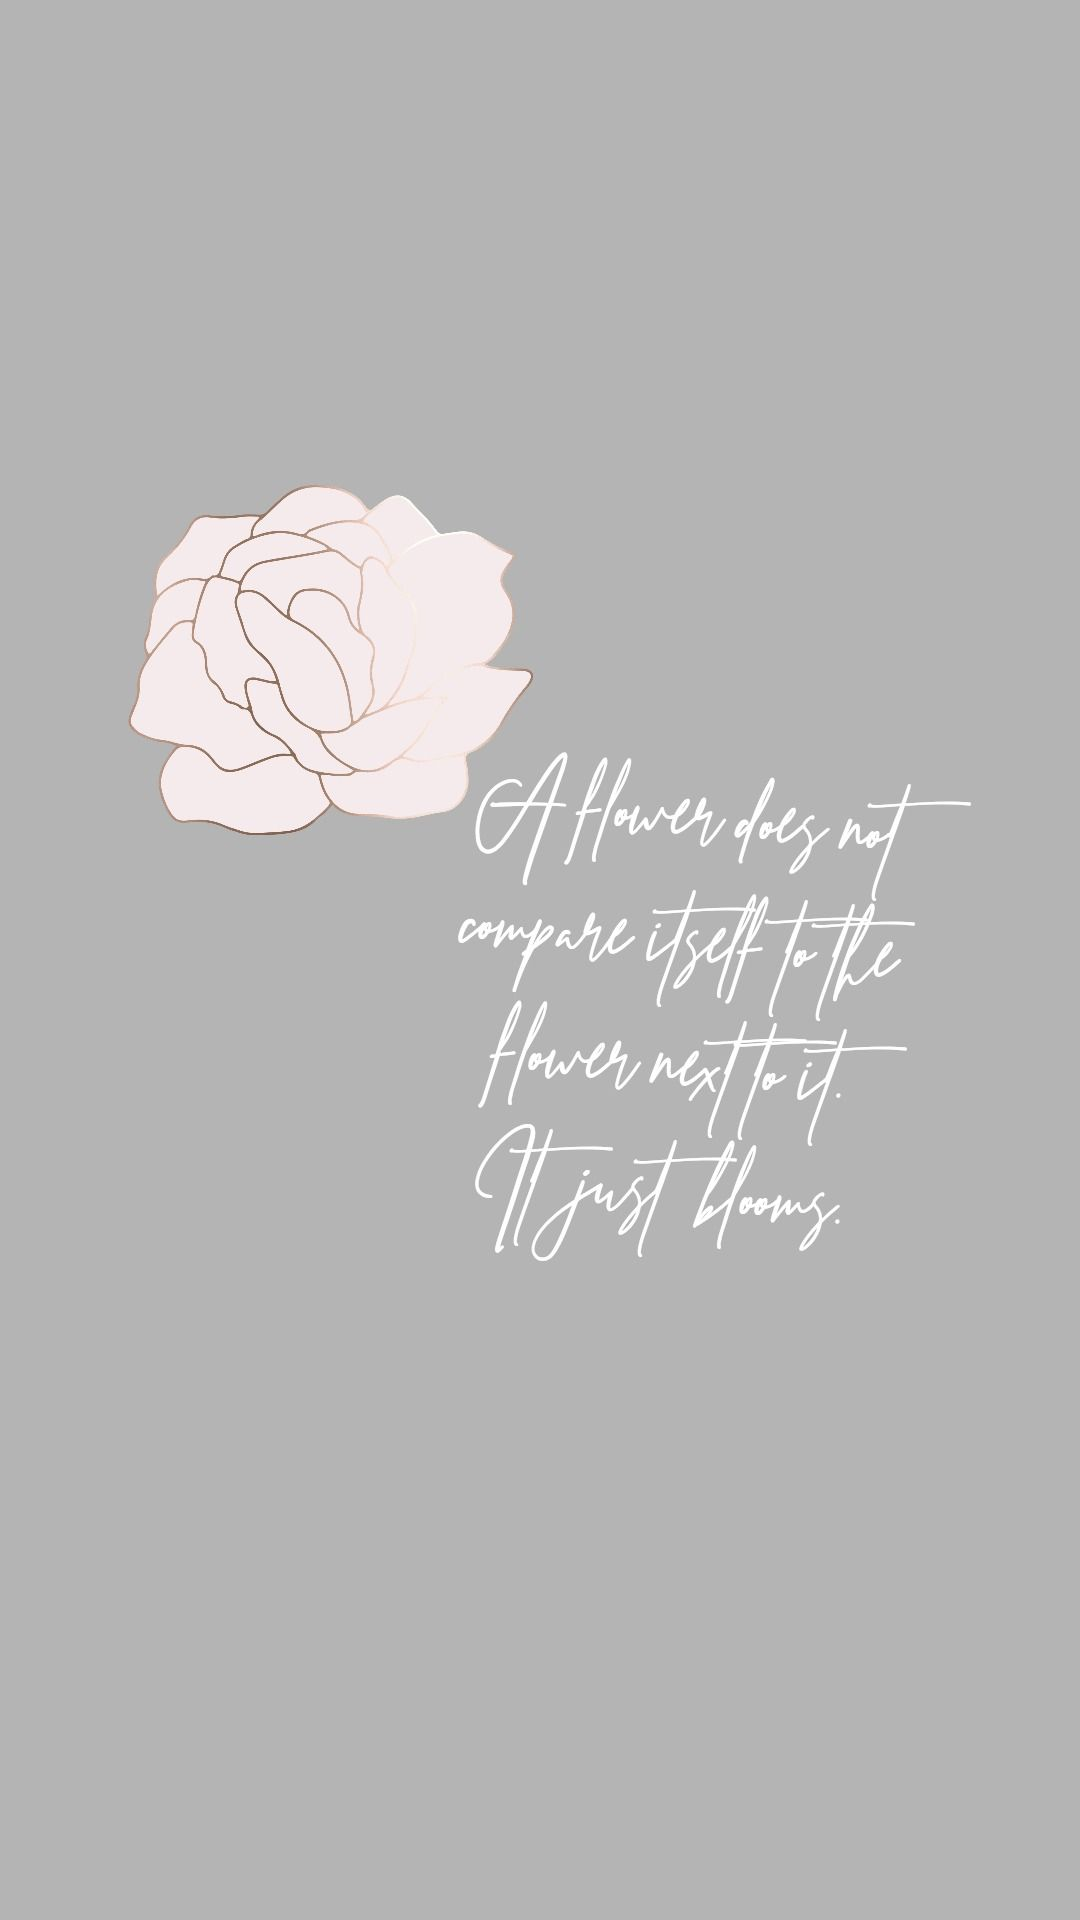 Pink Motivational Quotes Wallpaper In 2020 Wallpaper Iphone Quotes Free Iphone Wallpaper Phone Wallpaper Quotes